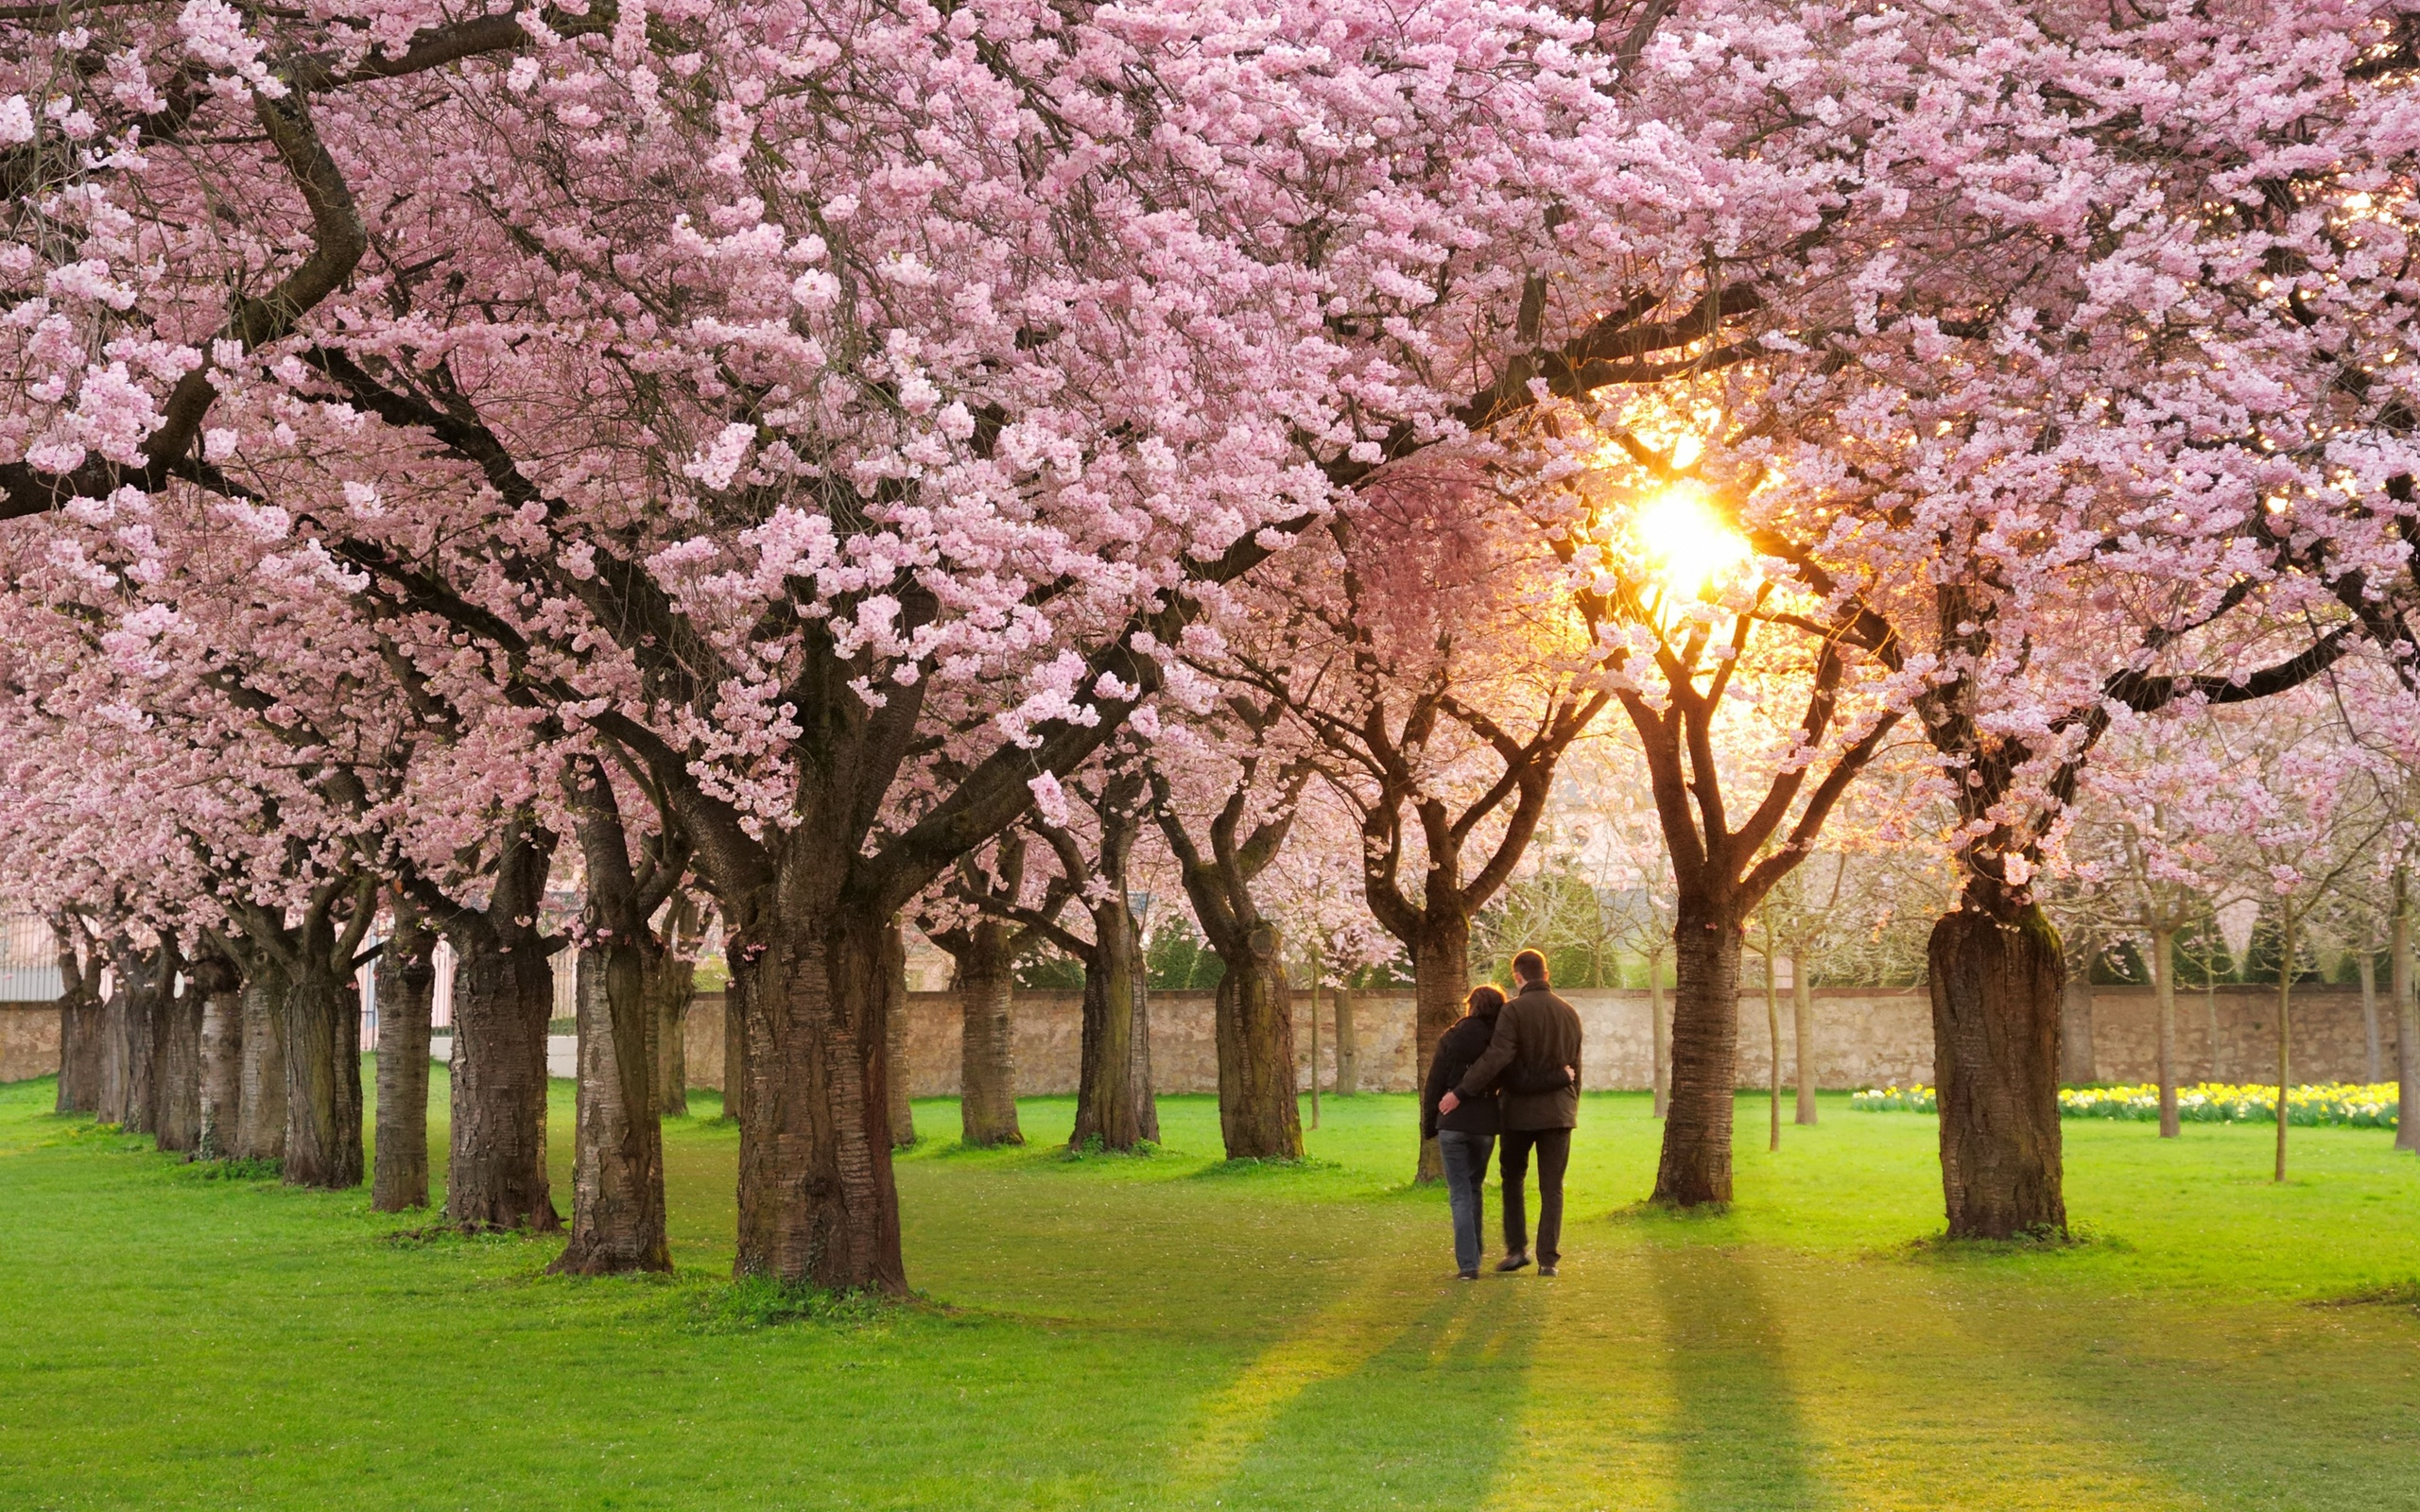 Wao Romantic Hd Spring Wallpaper Season Free